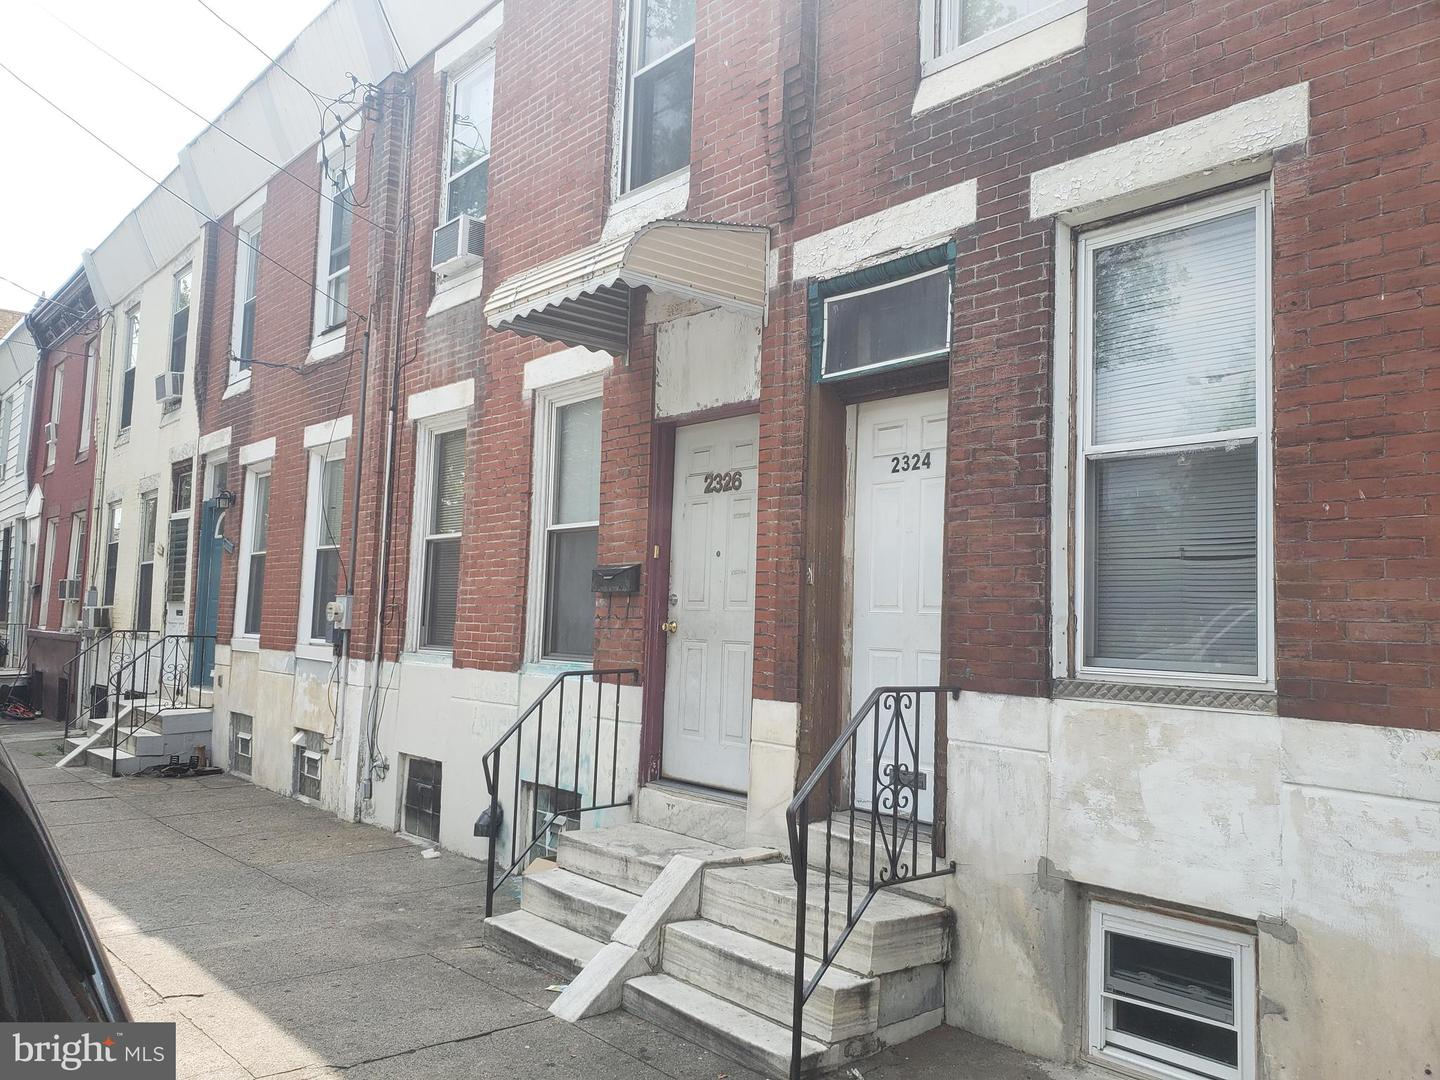 Property for Sale at Philadelphia, Pennsylvania 19148 United States